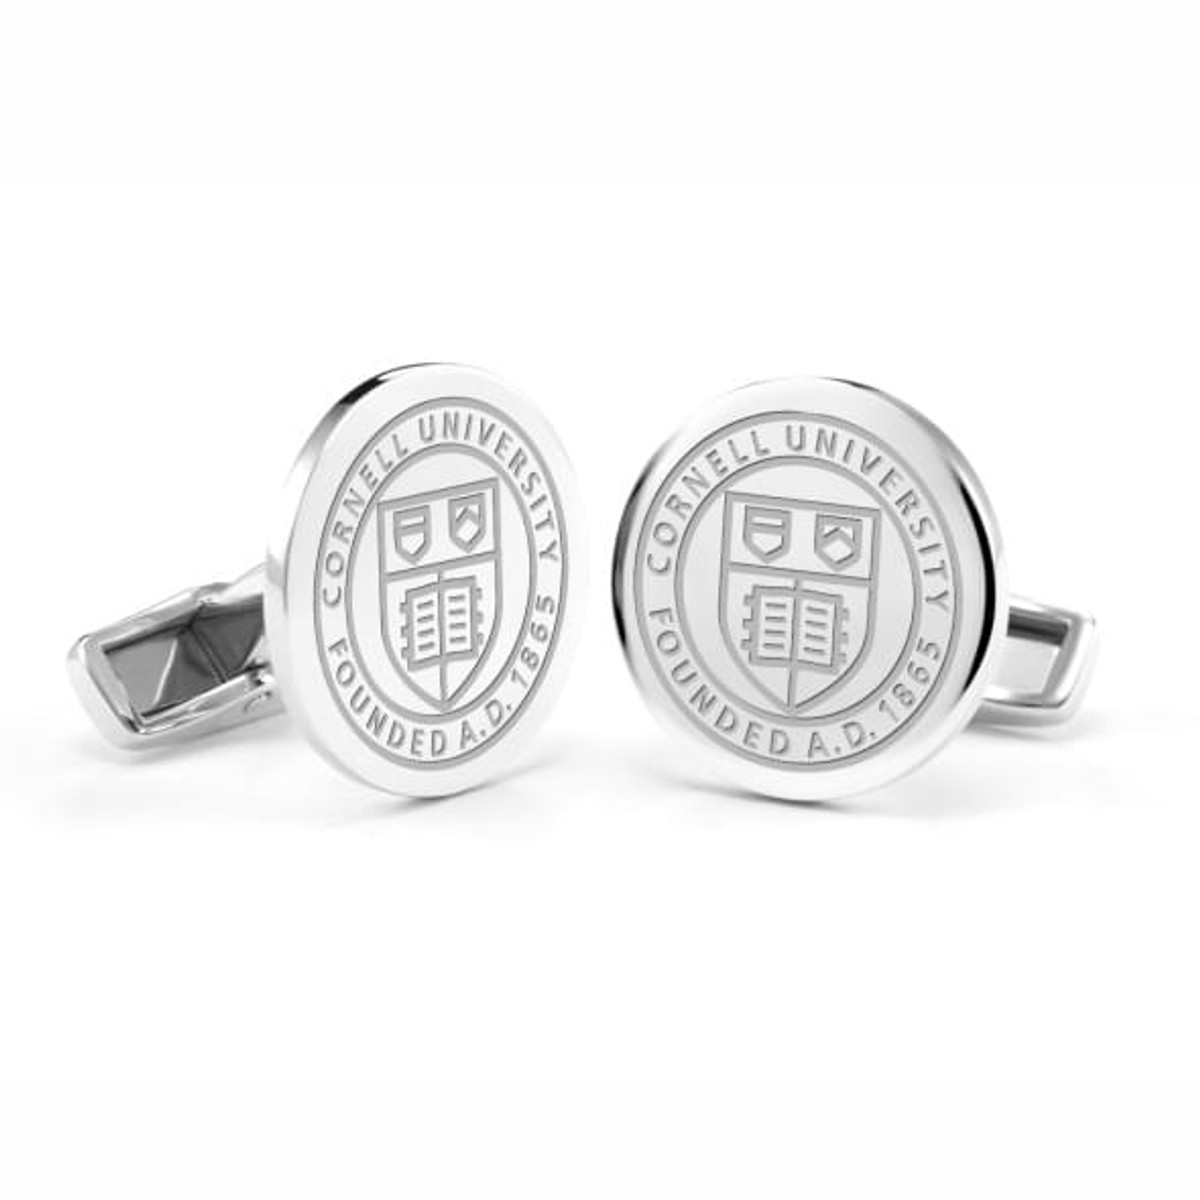 cornell university cufflinks in sterling silver